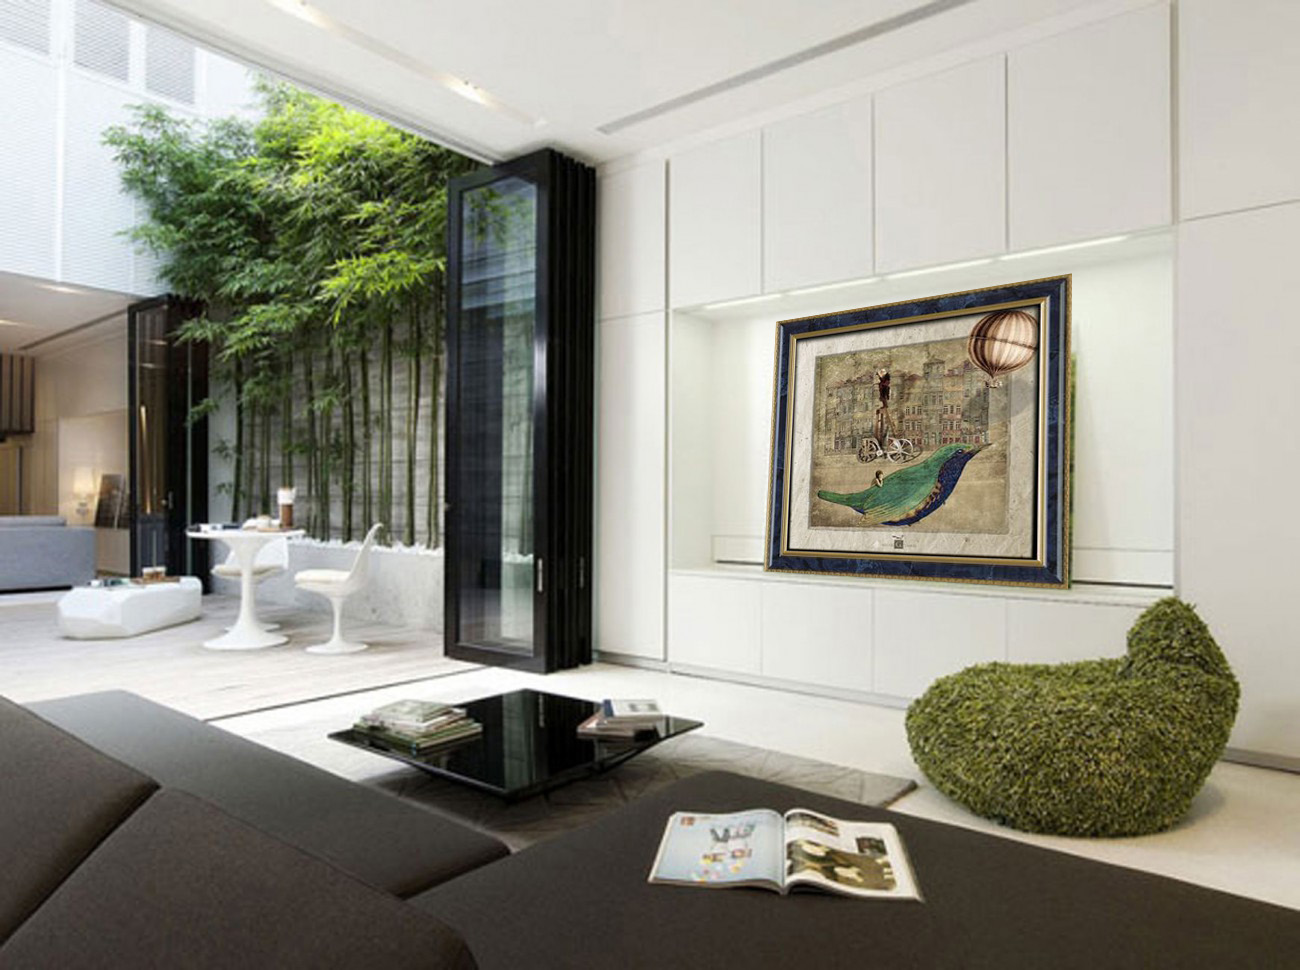 modern-apartment-with-rooftop-terrace-and-glass-door-in-living-room-1300x970.jpg